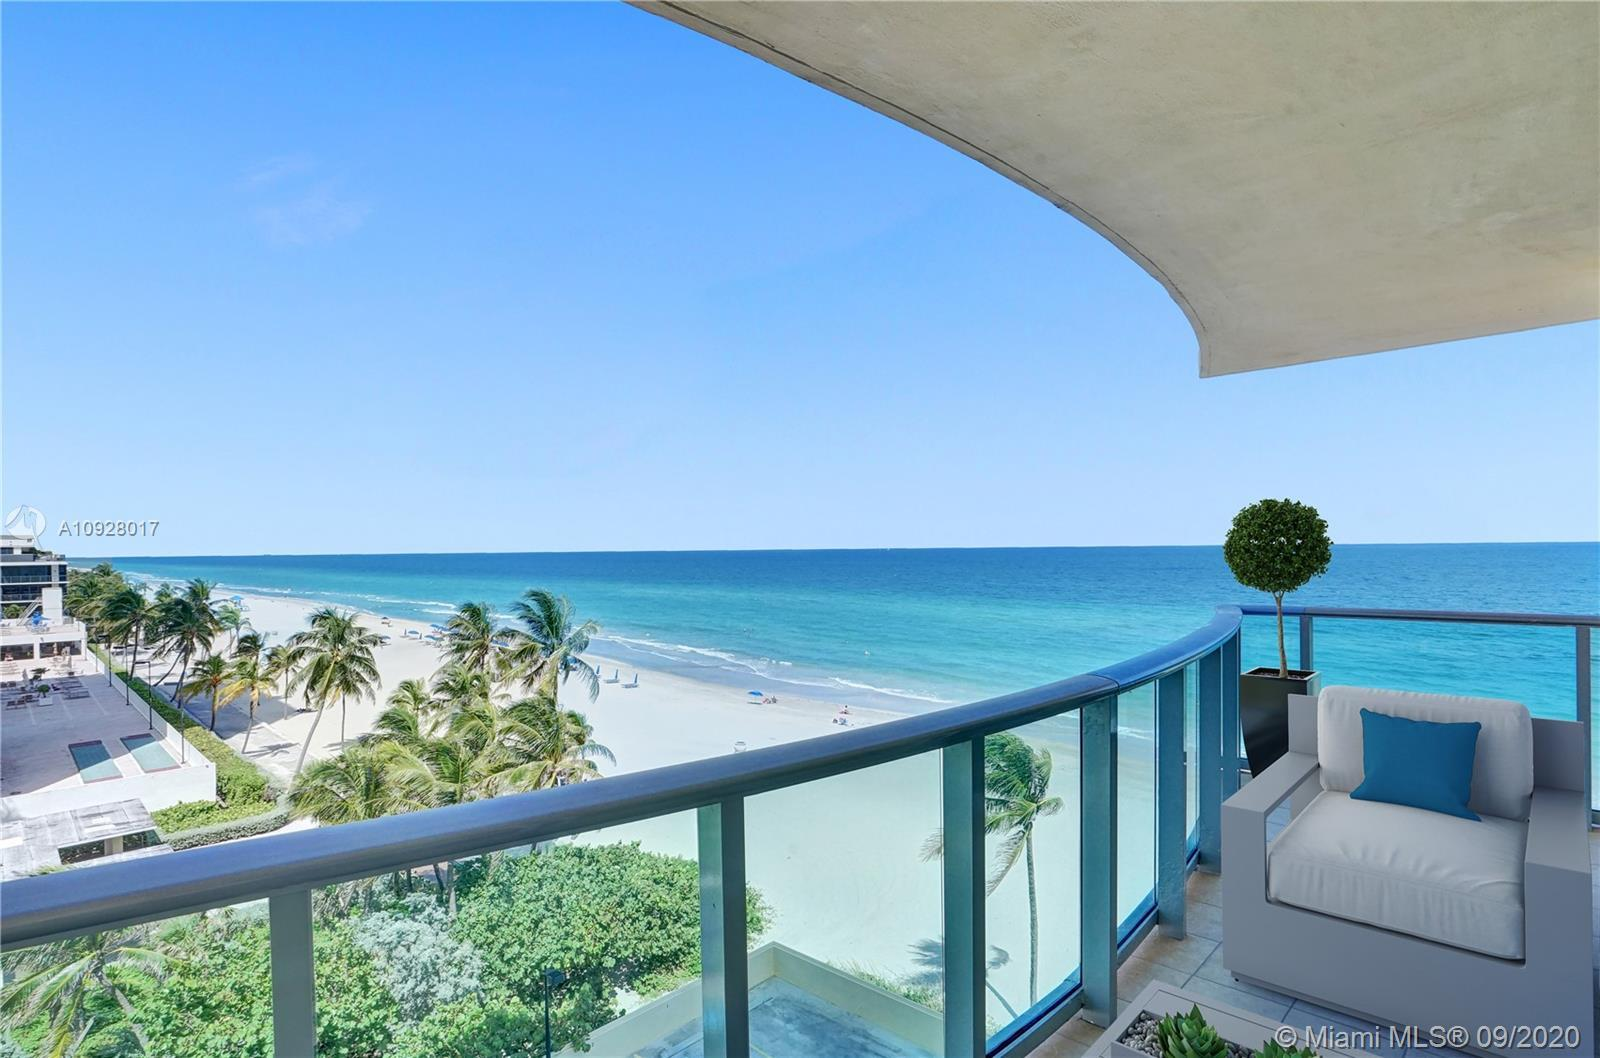 Great opportunity to own this bright and spacious residence with breathtaking ocean views. Feels lik